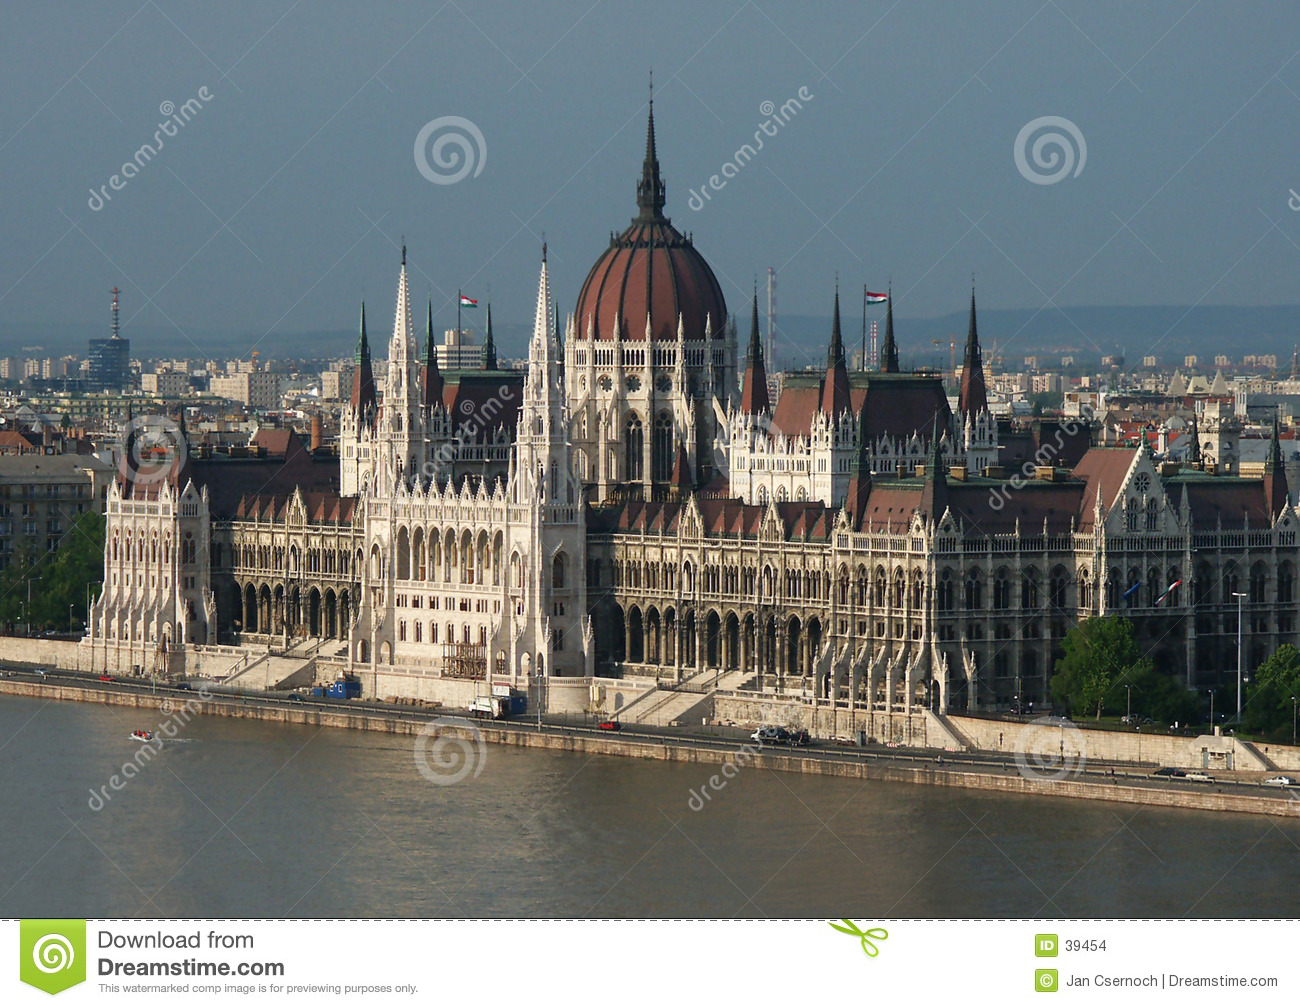 Hungarian Parliament by the Danube River